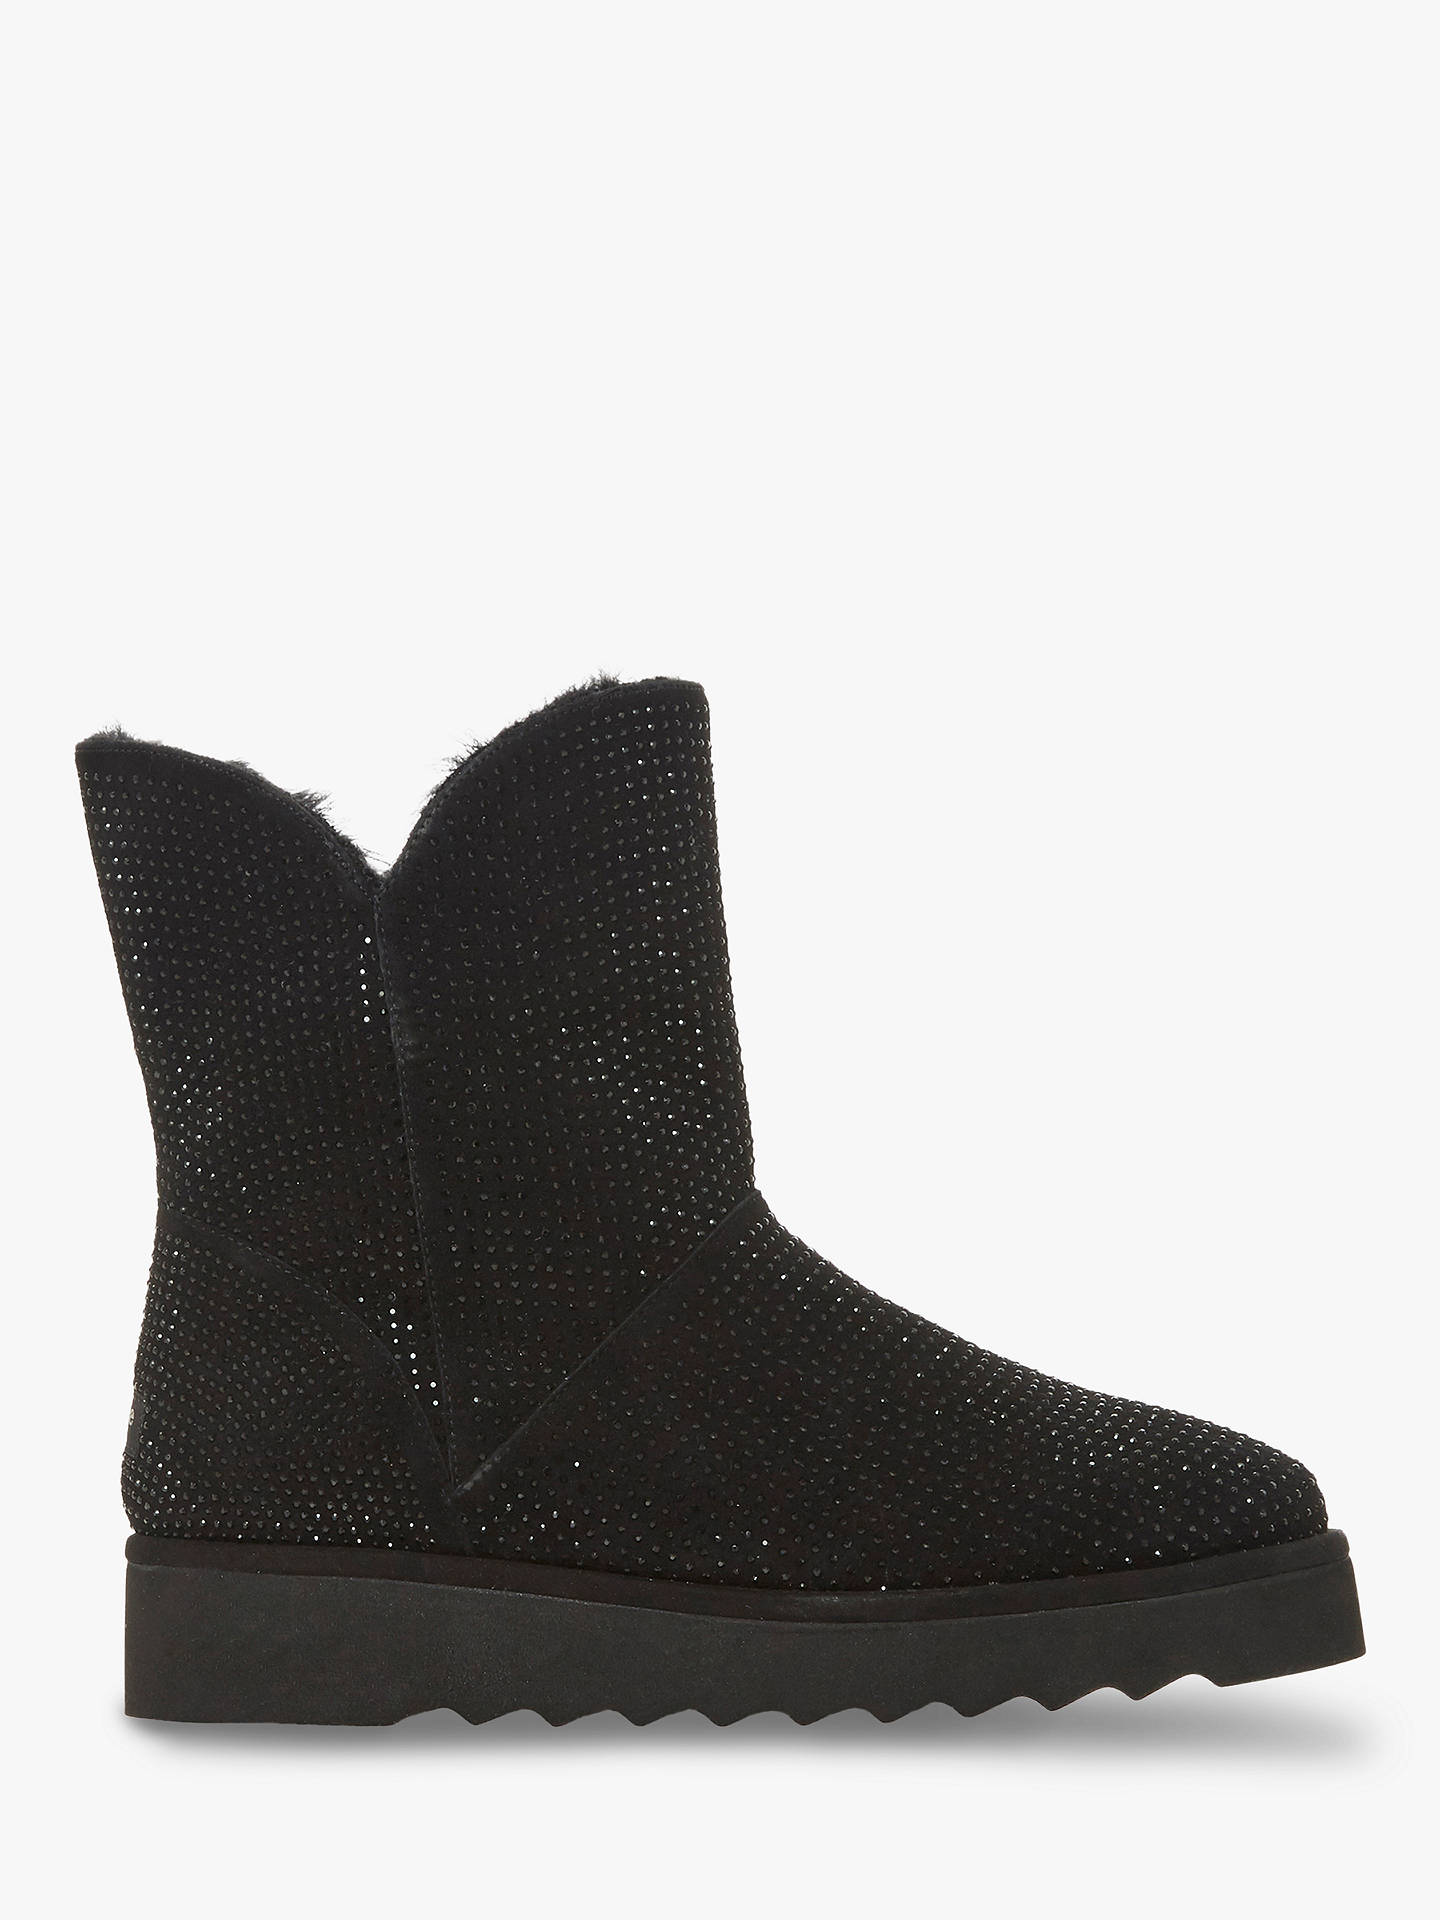 BuyDune Pina Suede Boots, Black, 3 Online at johnlewis.com